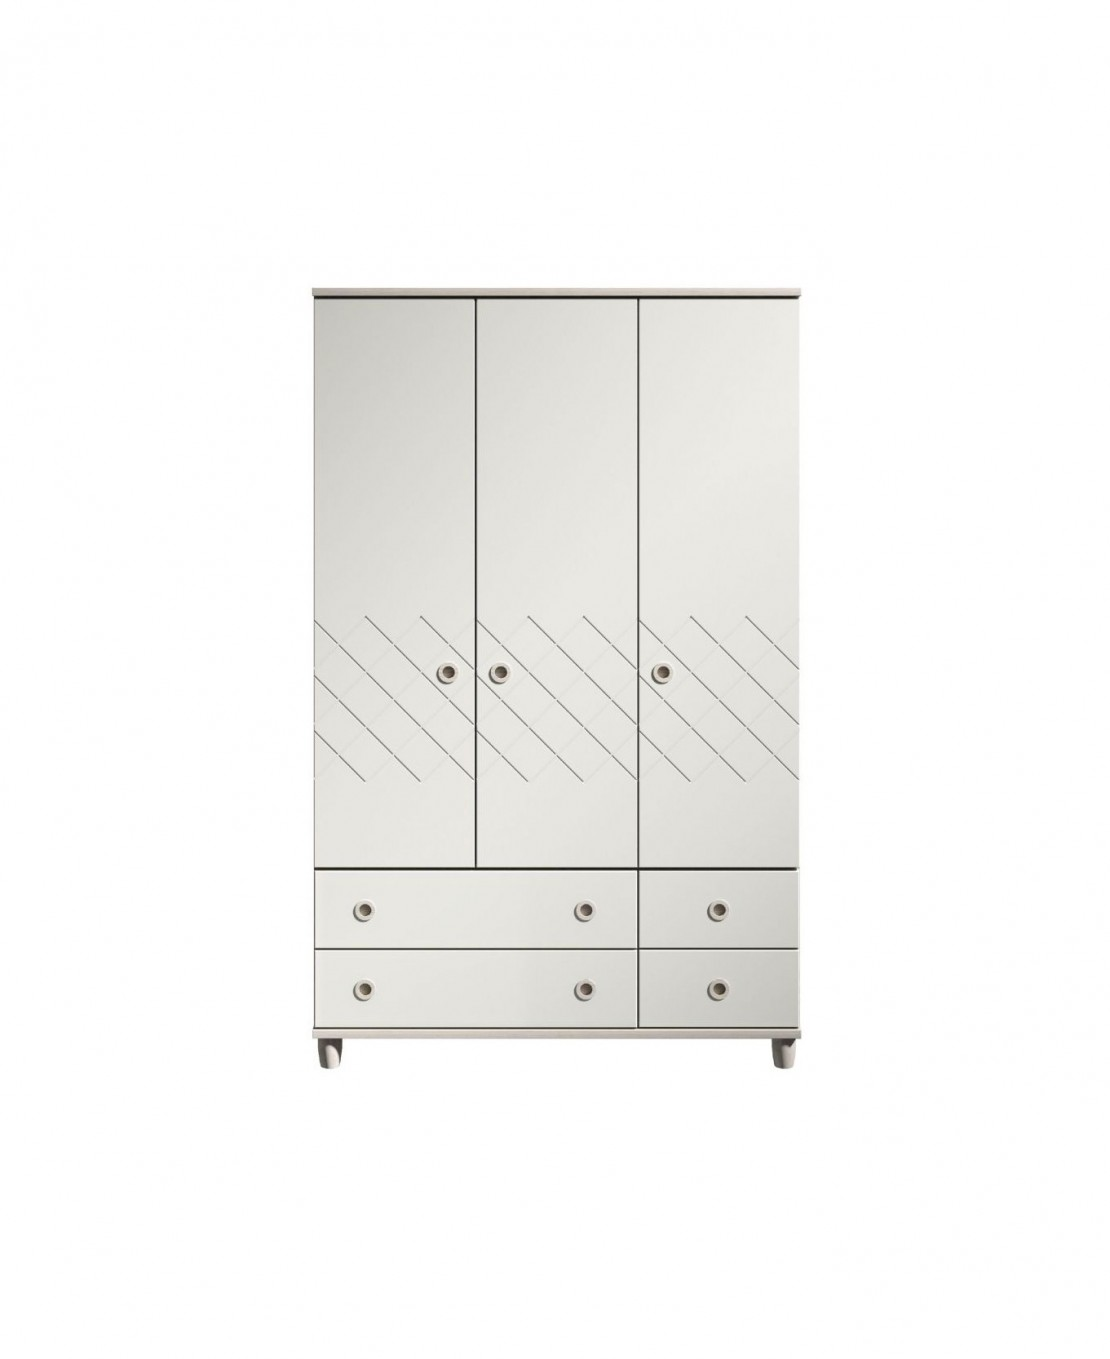 /_images/product-photos/kt-furniture-geo-3-door-gents-robe-matt-white-with-elm-carcase-a.jpg